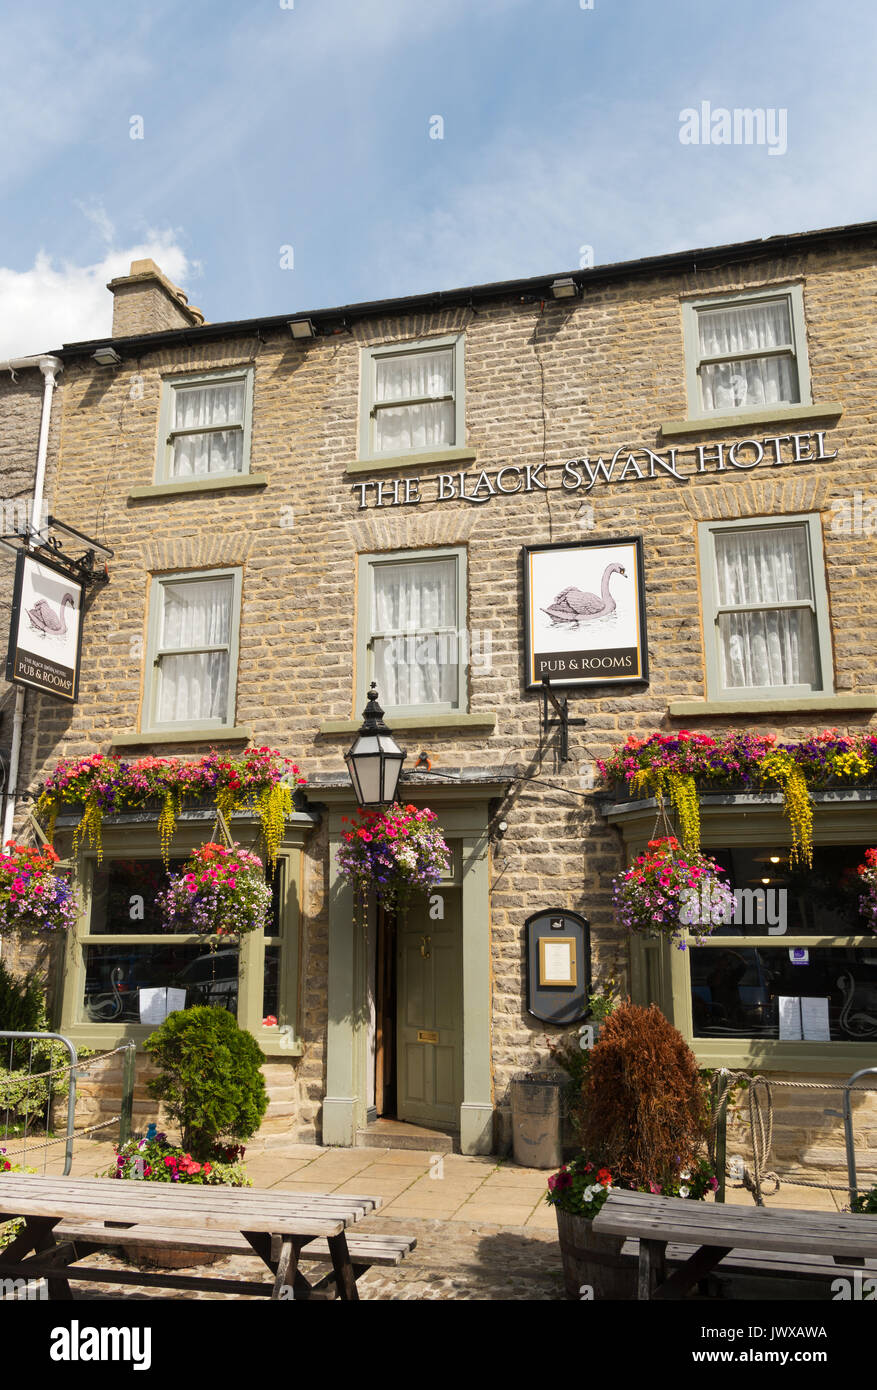 The Black Swan Hotel, Leyburn, Wensleydale, North Yorkshire, England, UK - Stock Image